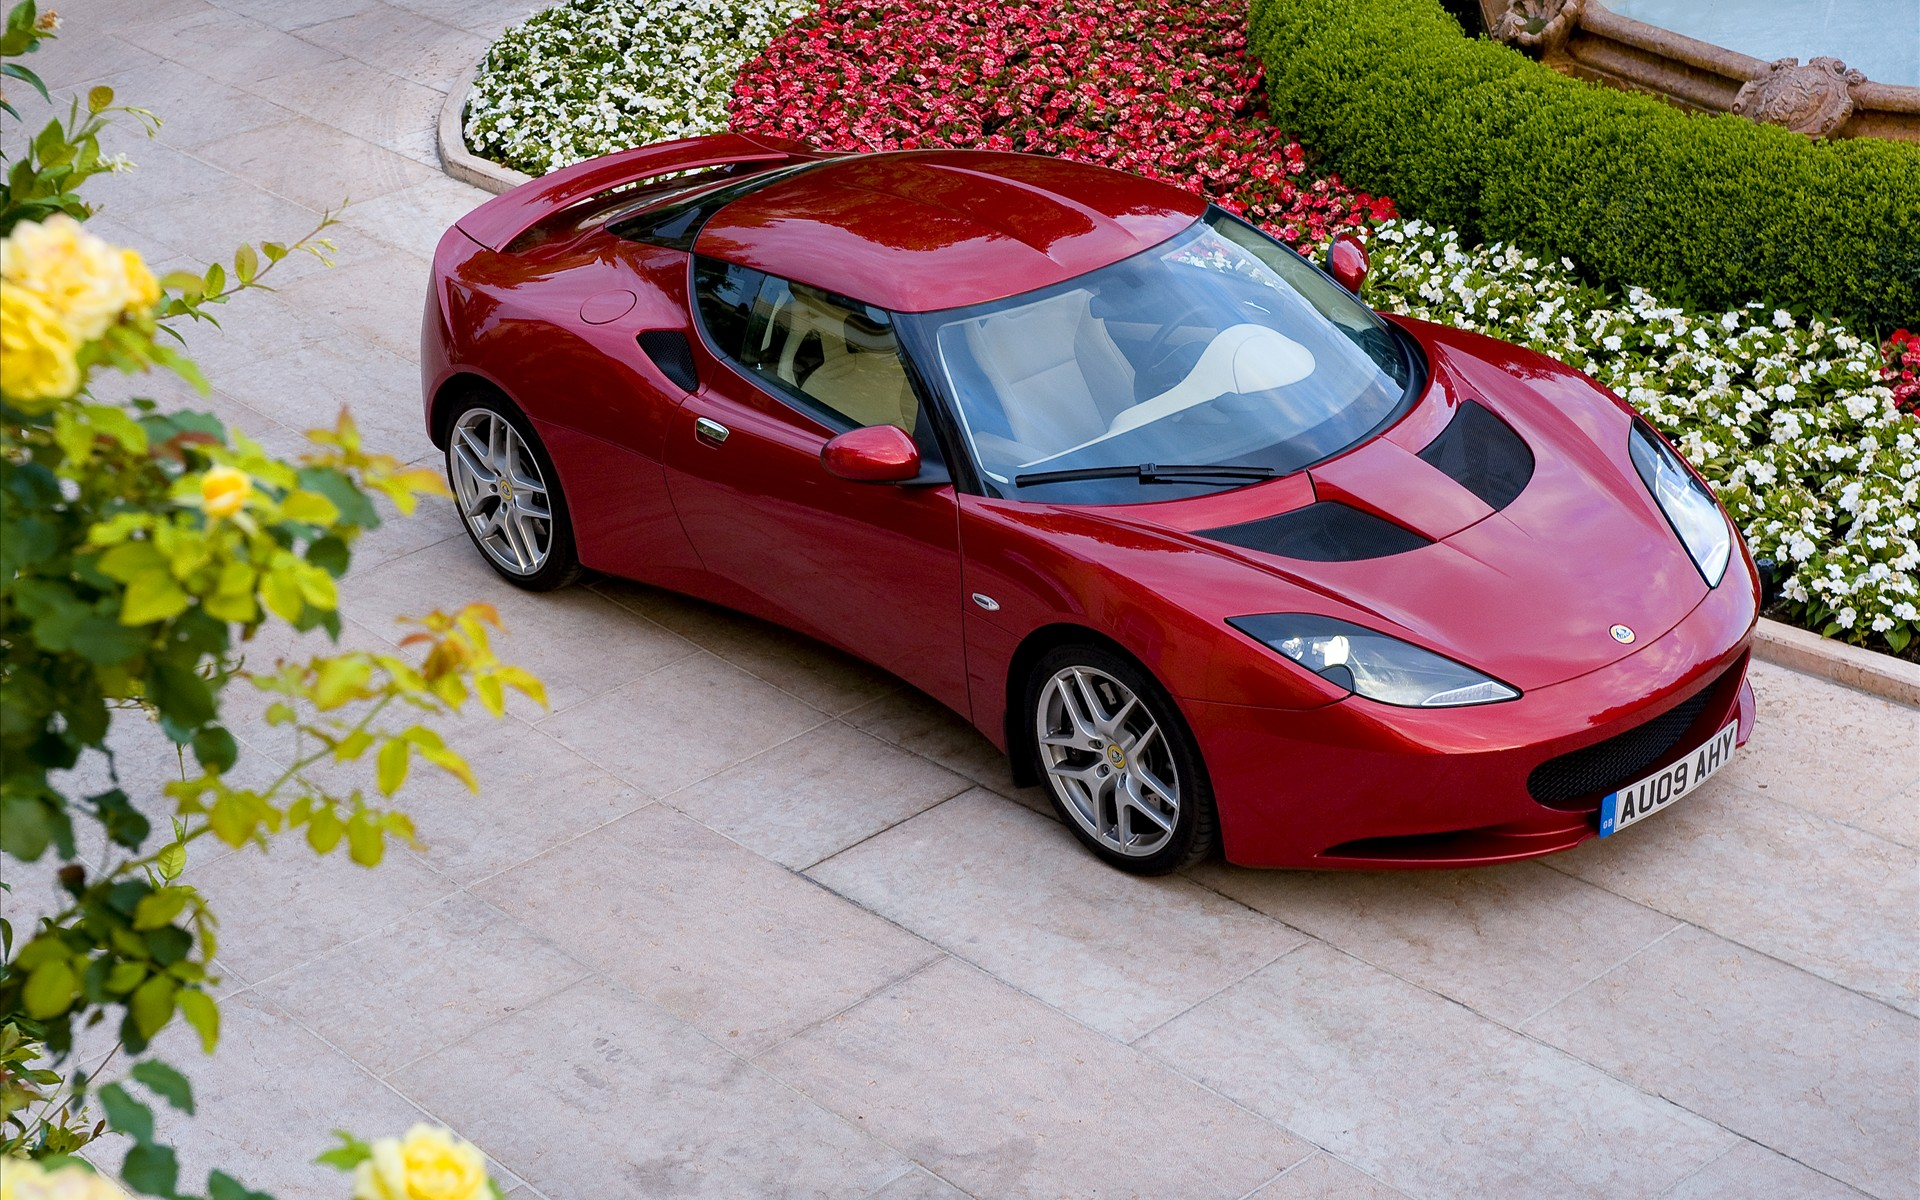 2010 Lotus Evora 2 196.65 Kb